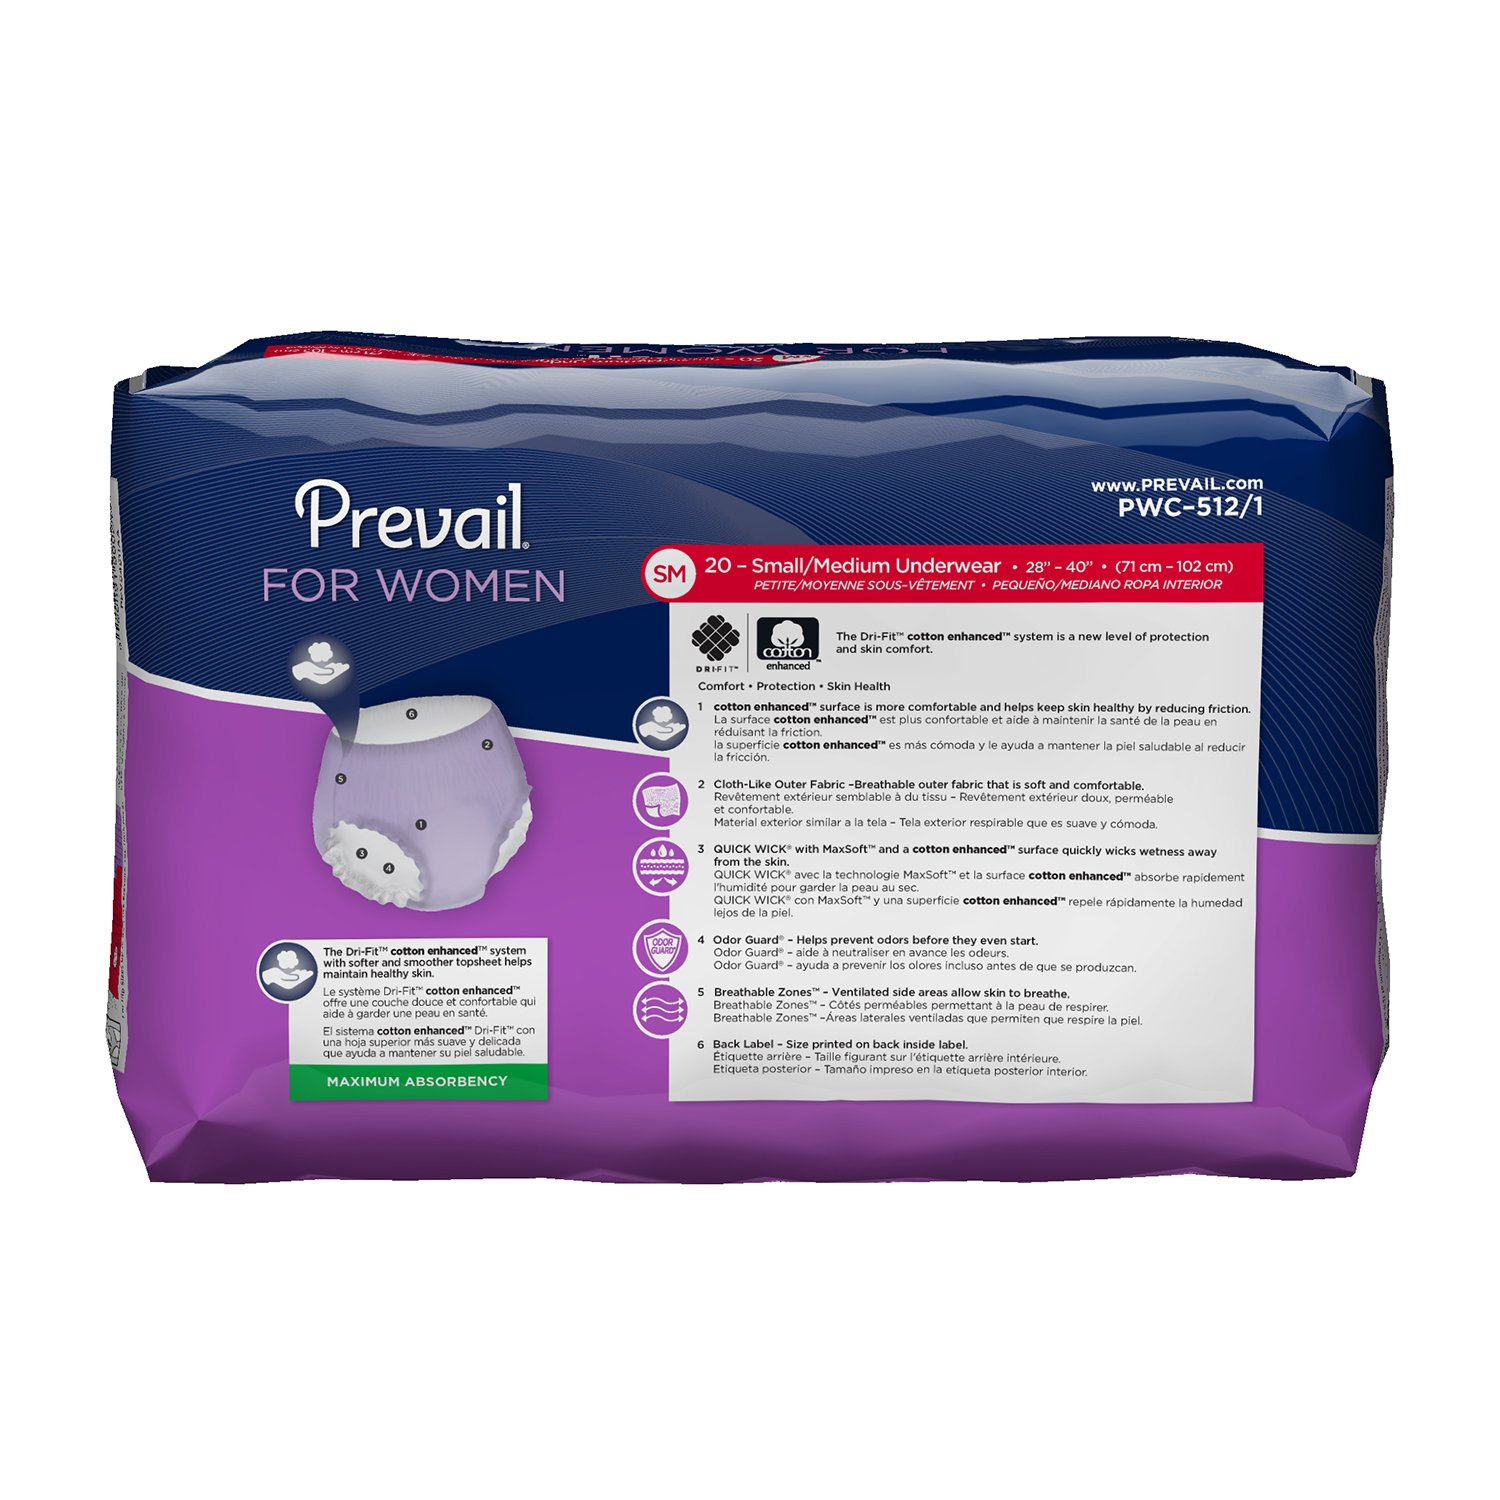 Amazon.com: Prevail Maximum Absorbency Incontinence Underwear for Women, Small/Medium, 80 Total Count: Health & Personal Care